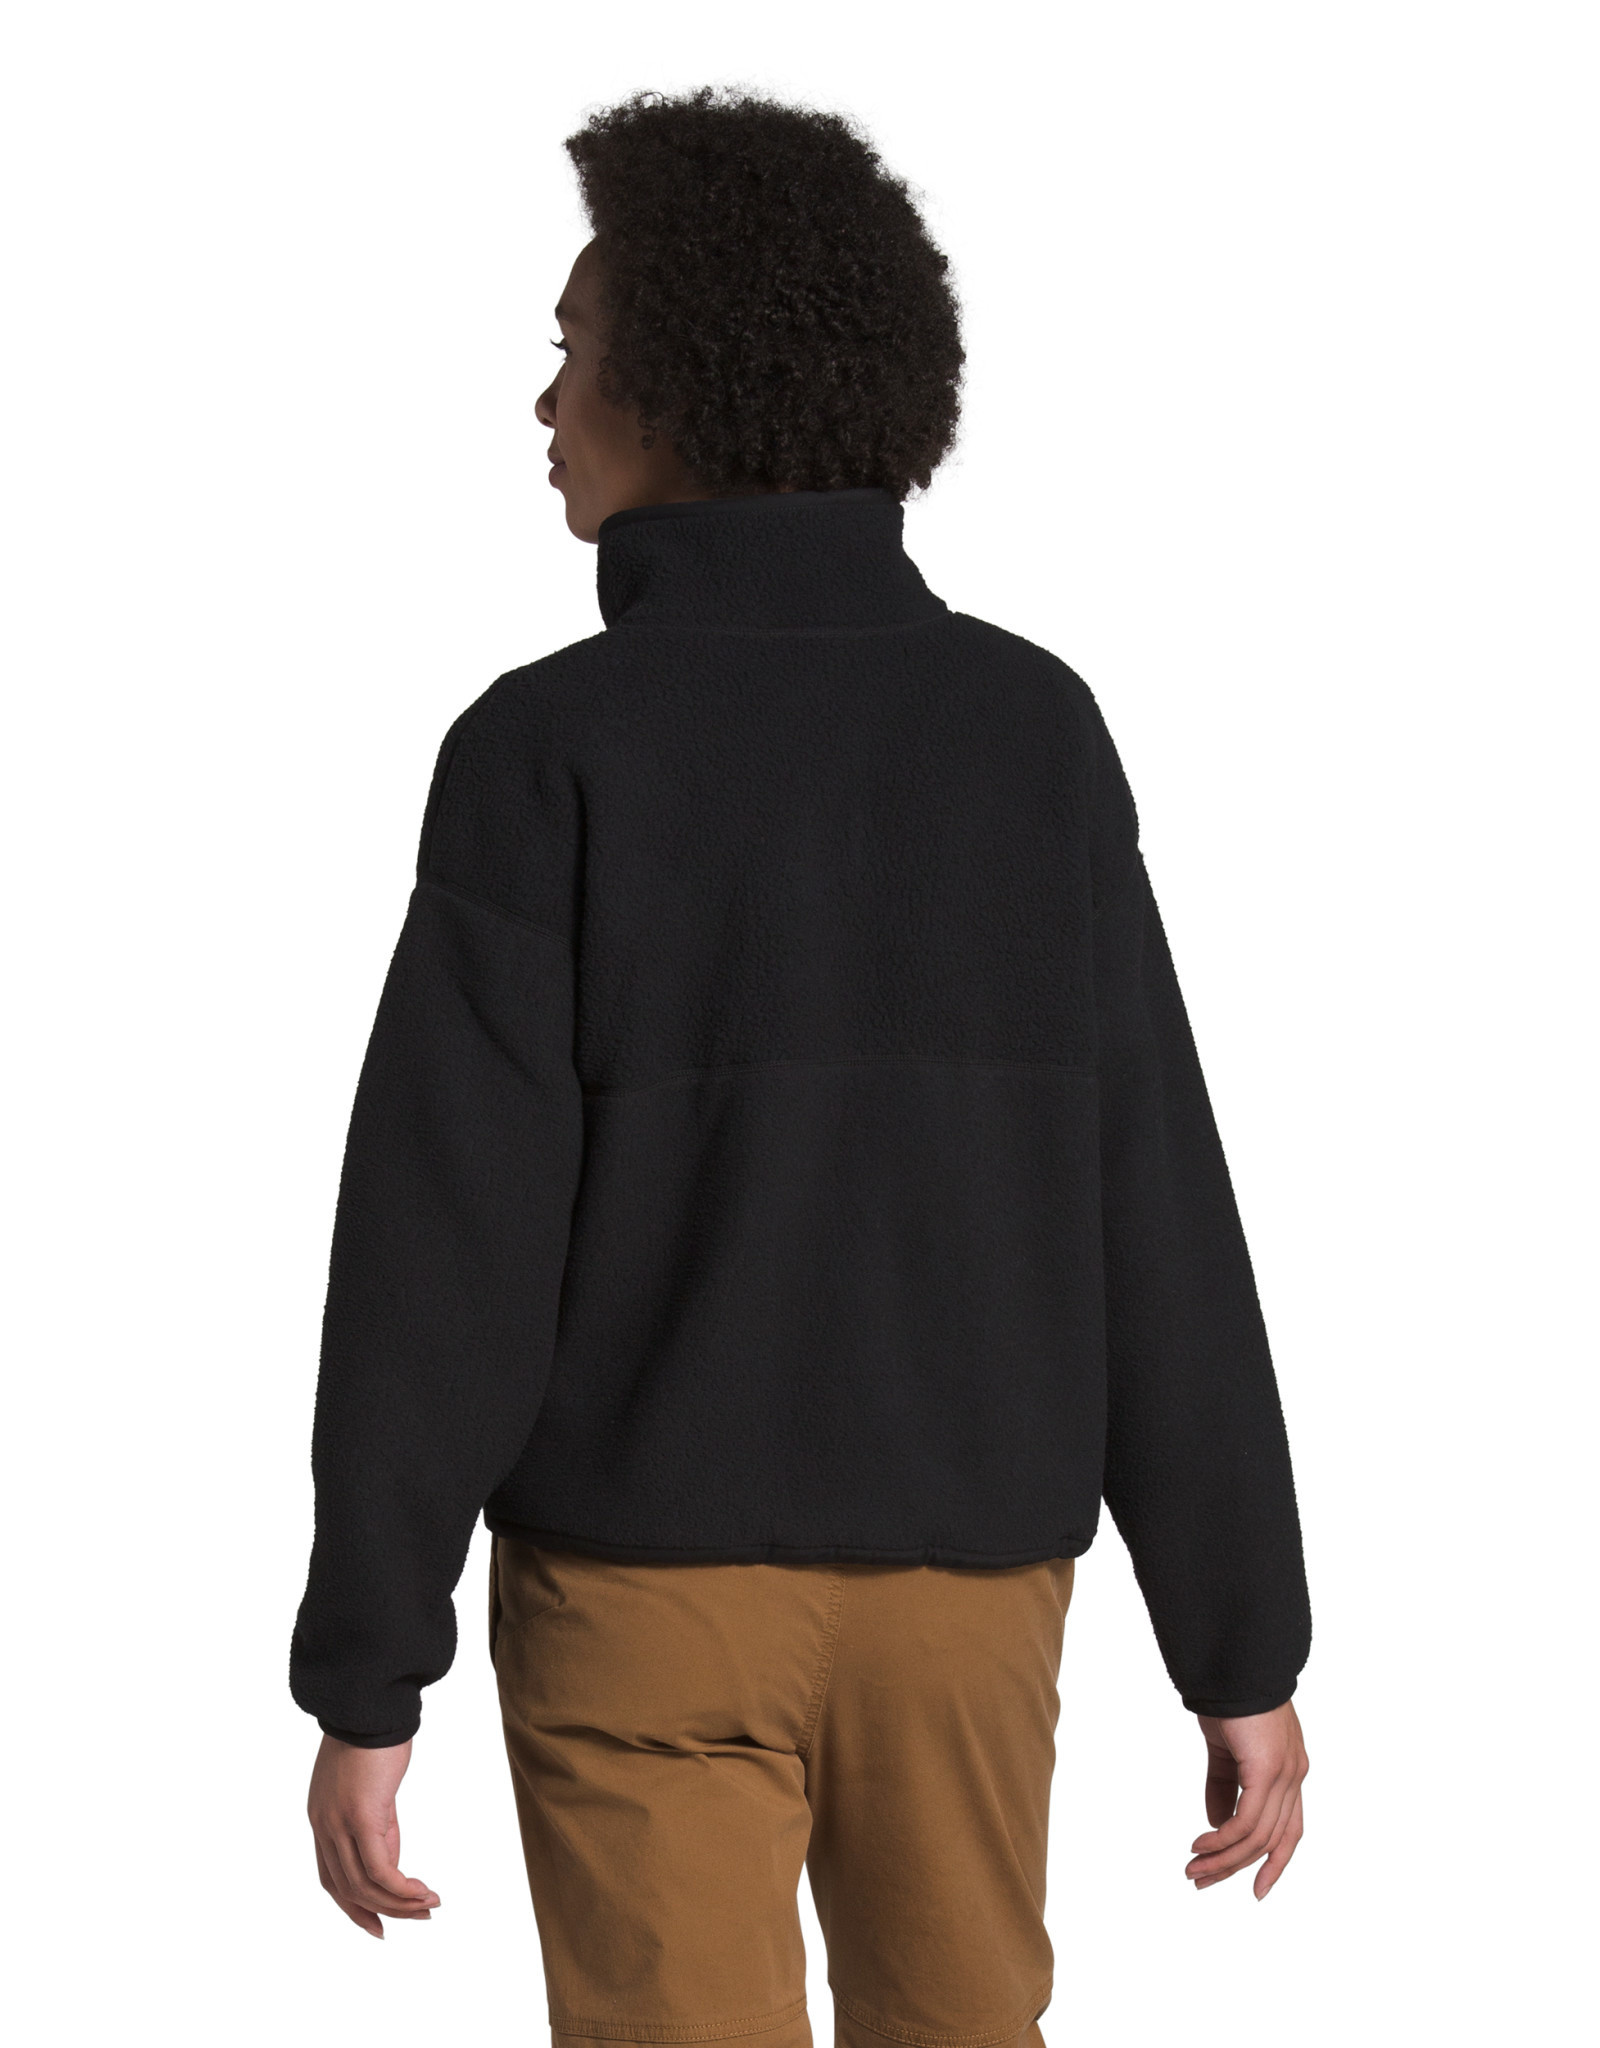 The North Face The North Face Women's Cragmont Fleece ¼ Snap -S2021